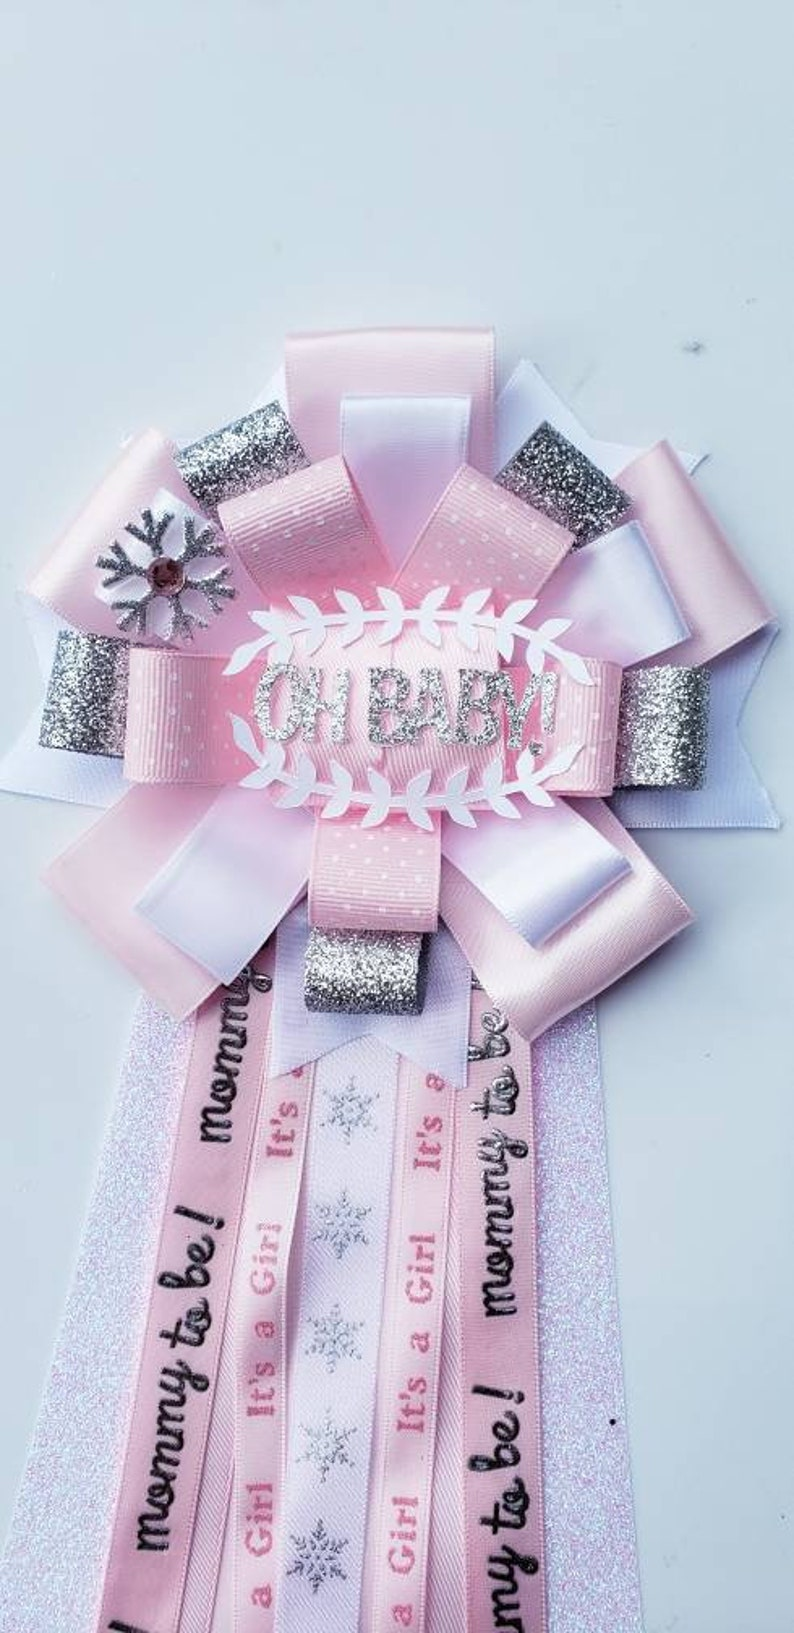 Wonderland witer baby shower corsagesnowflakes mumChristmas baby shower corsagepink and silver mom to be corsagewinter baby shower